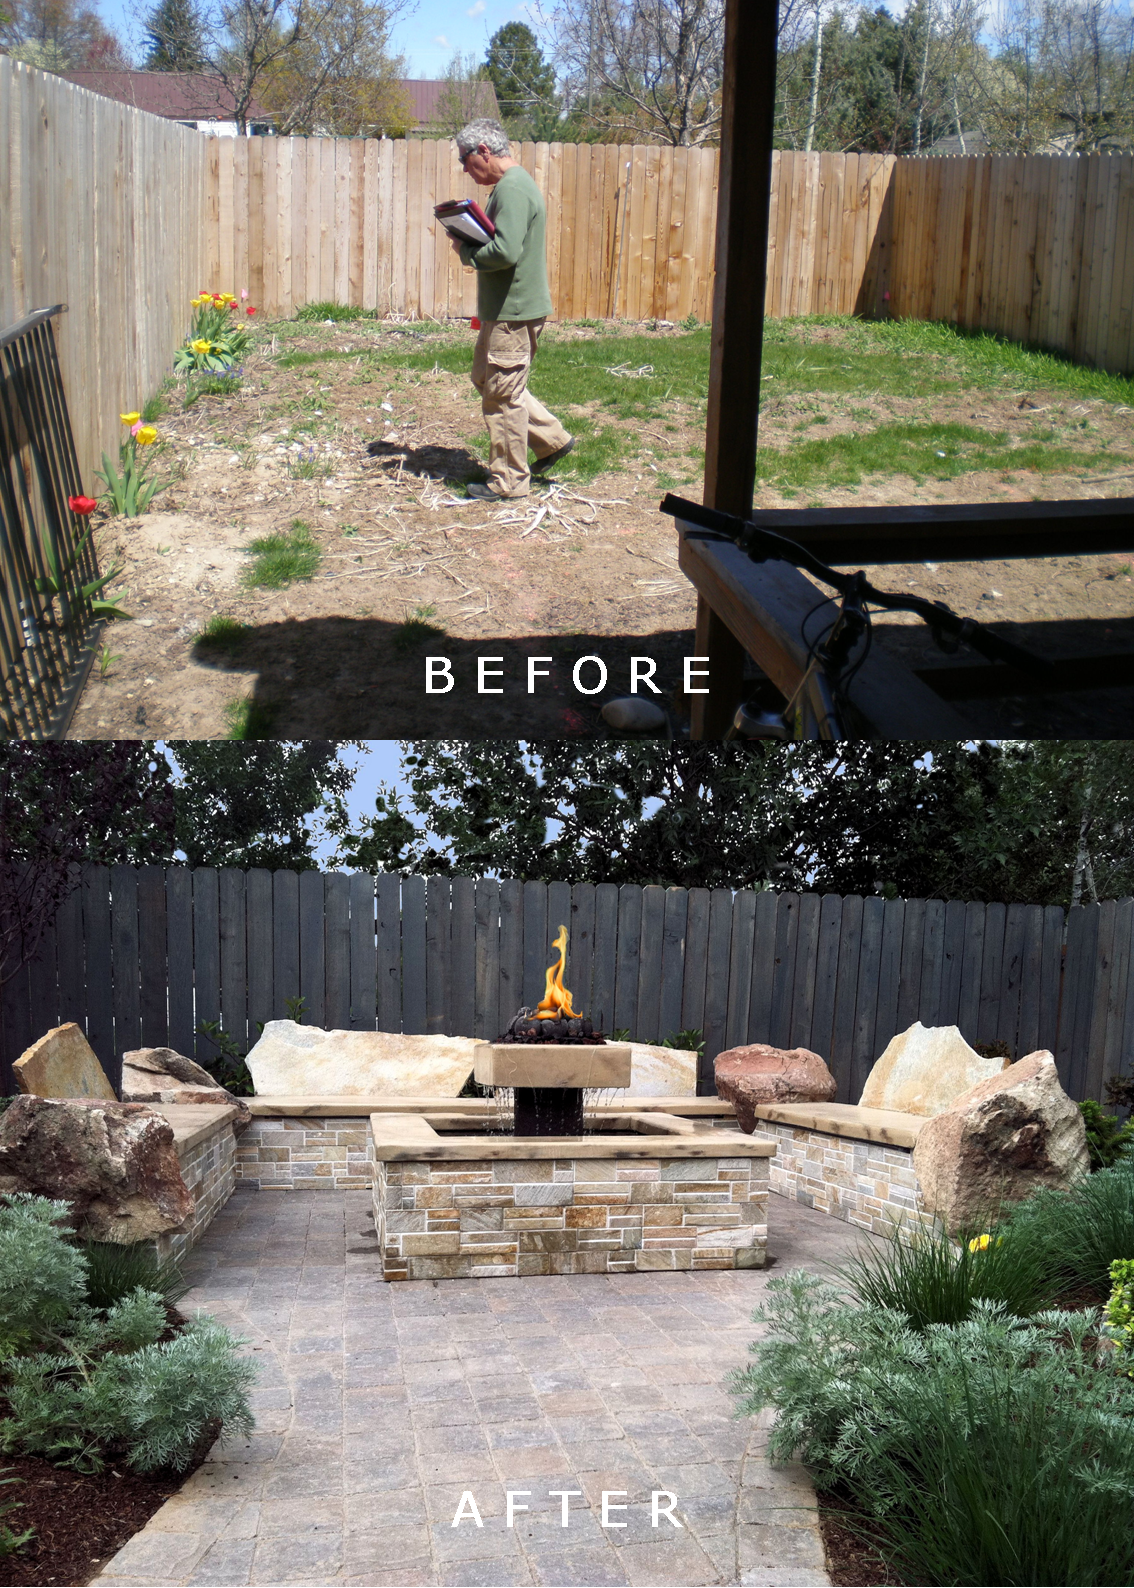 Herring Residence: Before/After | The Garden Artist Boise, ID